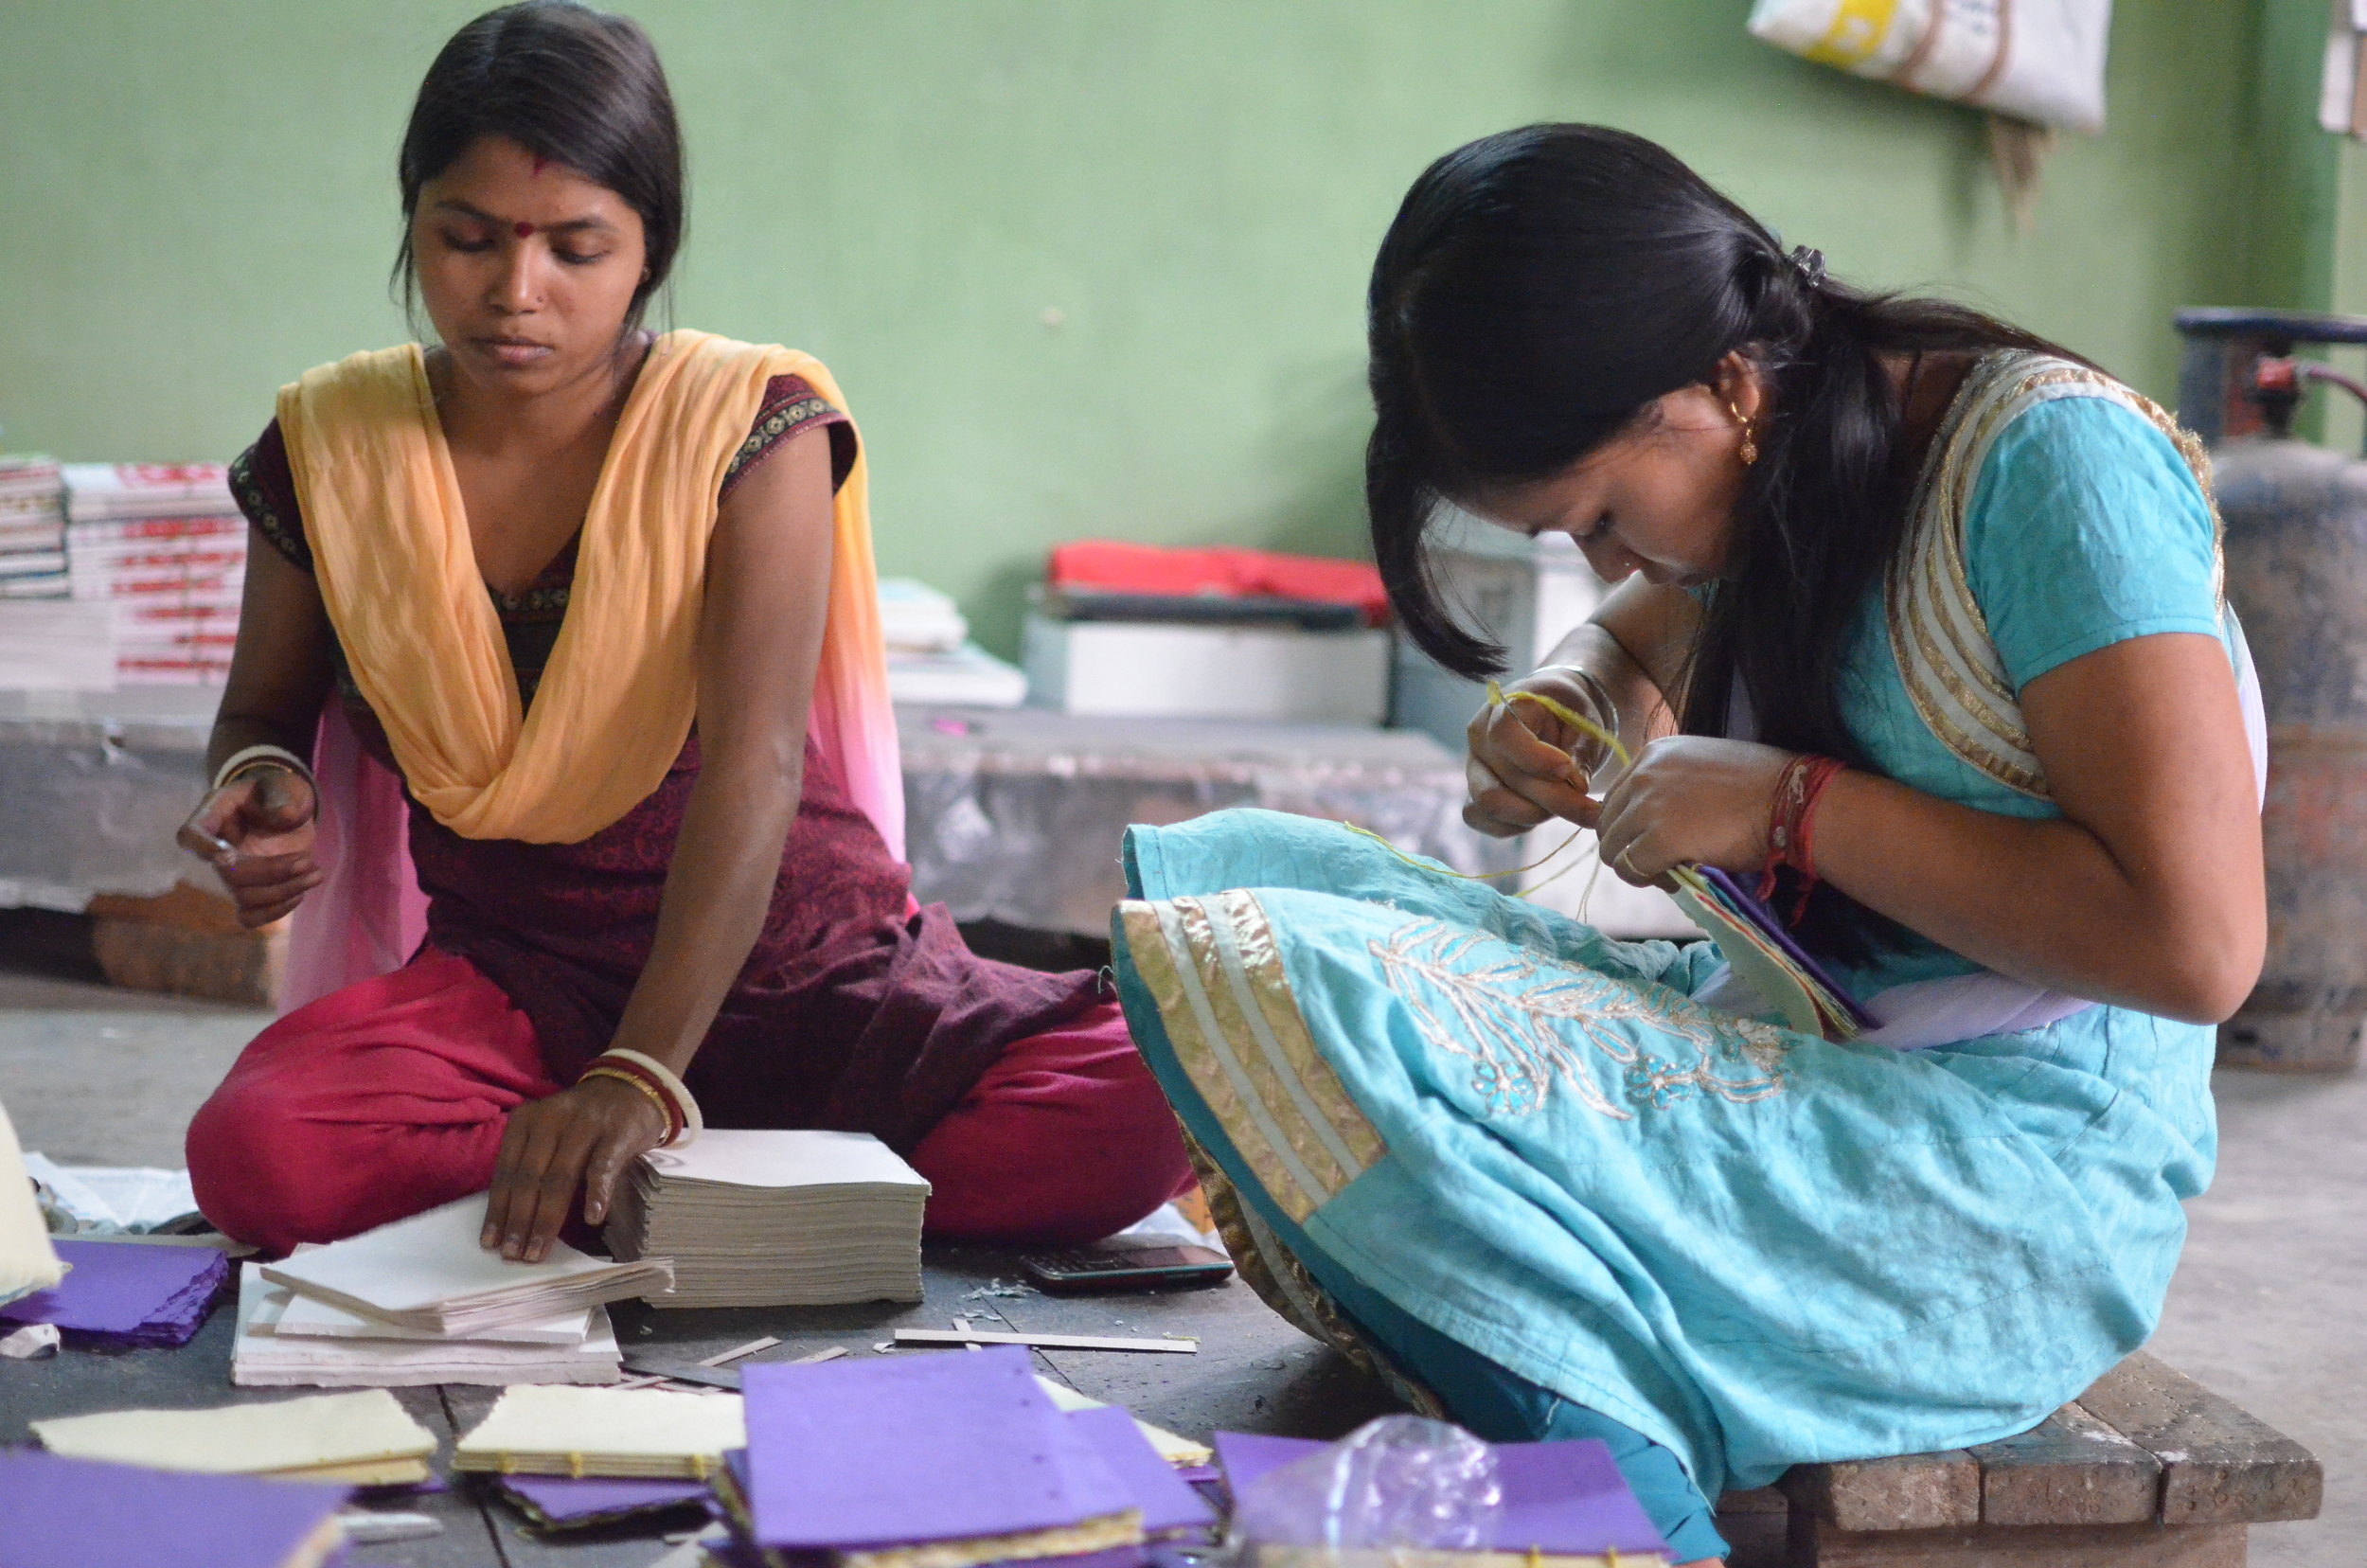 Rekha (left) and her colleague Minakshi (right) produce handcrafted notebooks in the Elrhino factory's design space